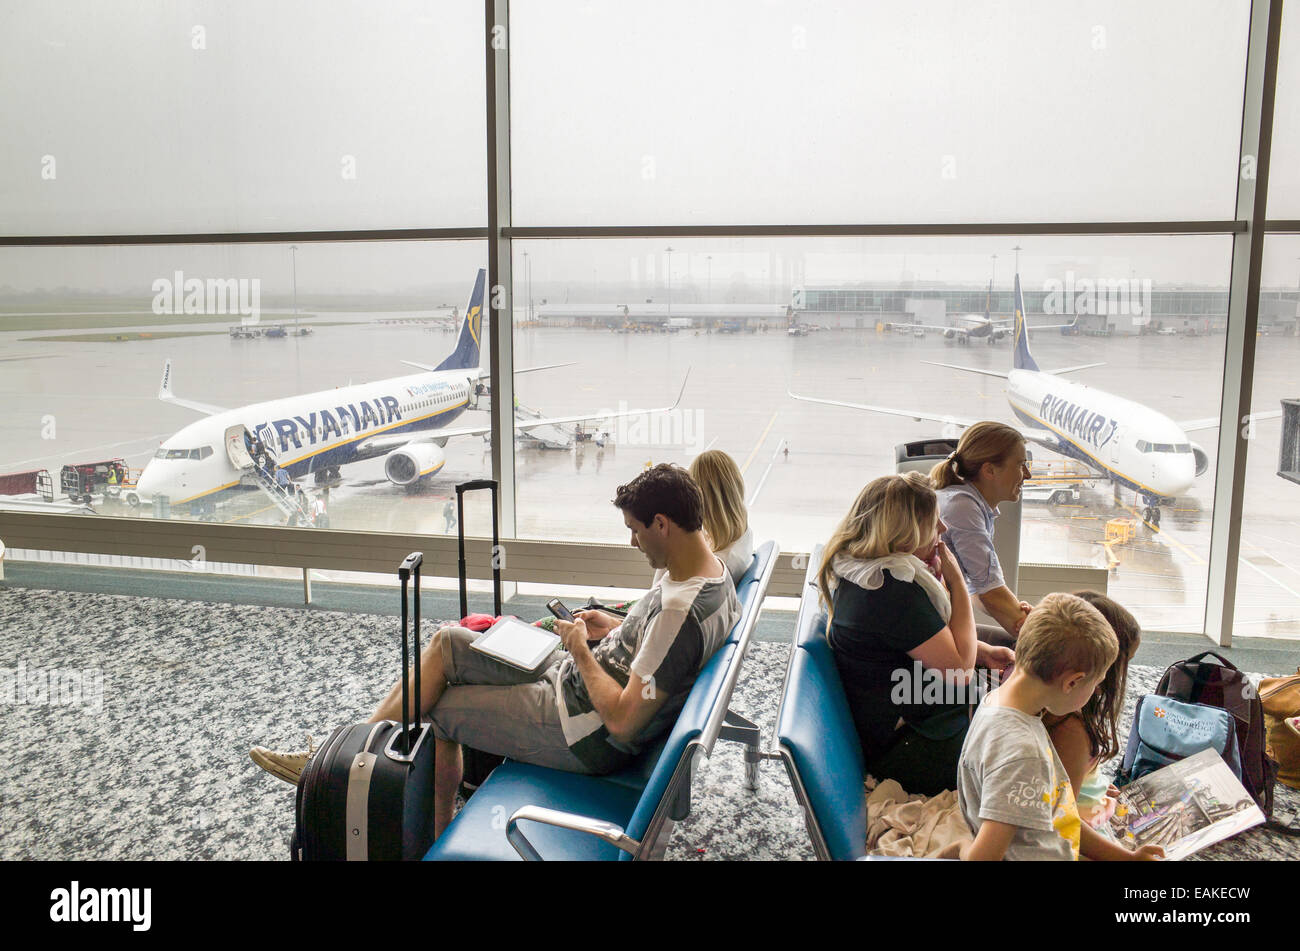 Passengers waiting to board Ryanair plane at Stansted Airport departure gate, England, UK - Stock Image